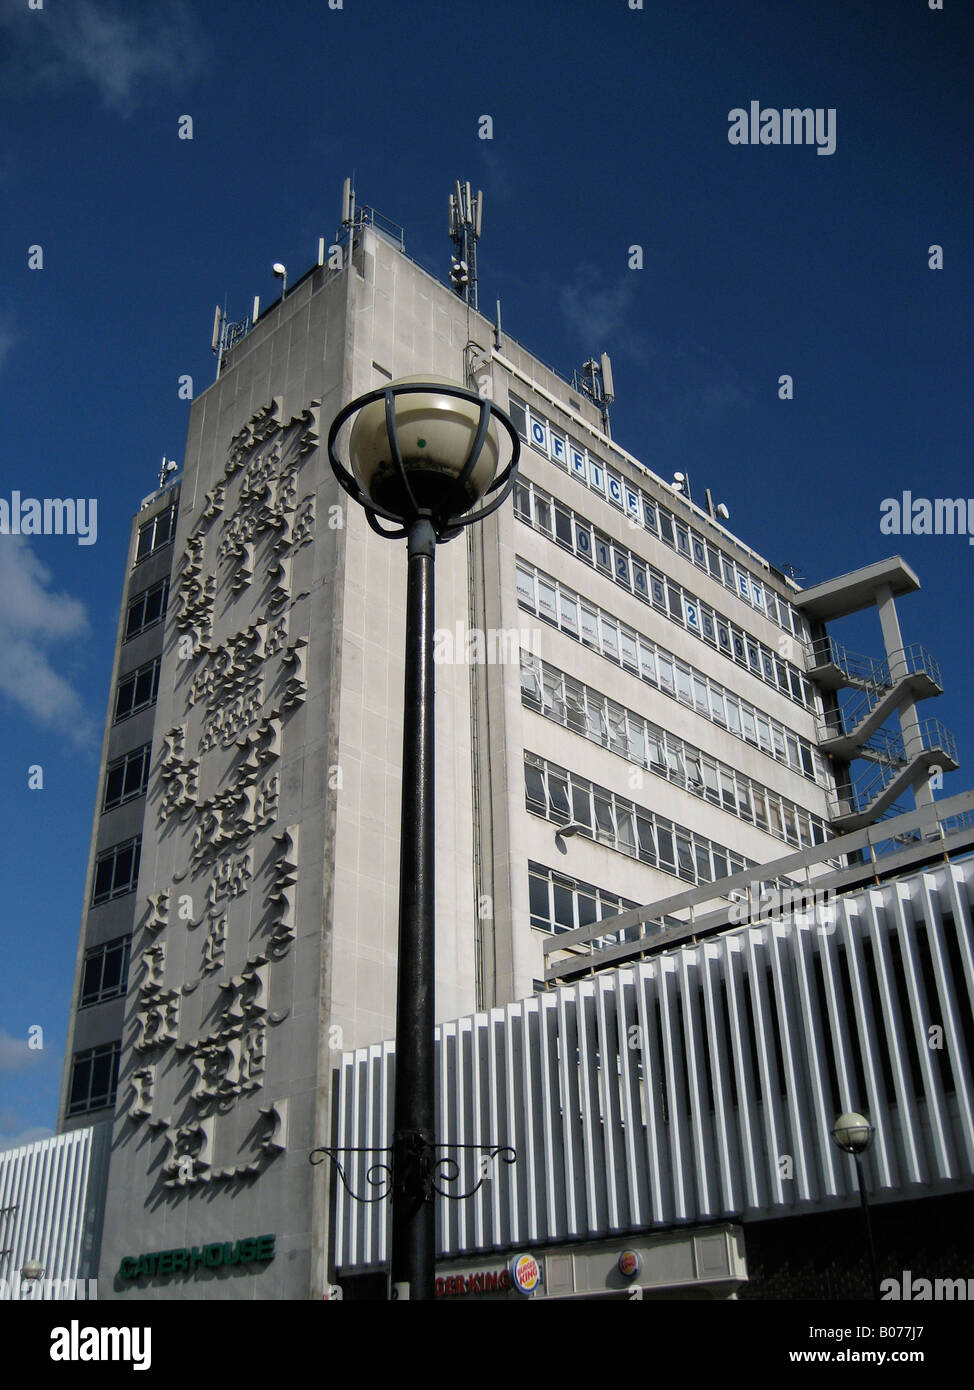 Vacant Office Block in Chelmsford, Essex, England UK - Stock Image